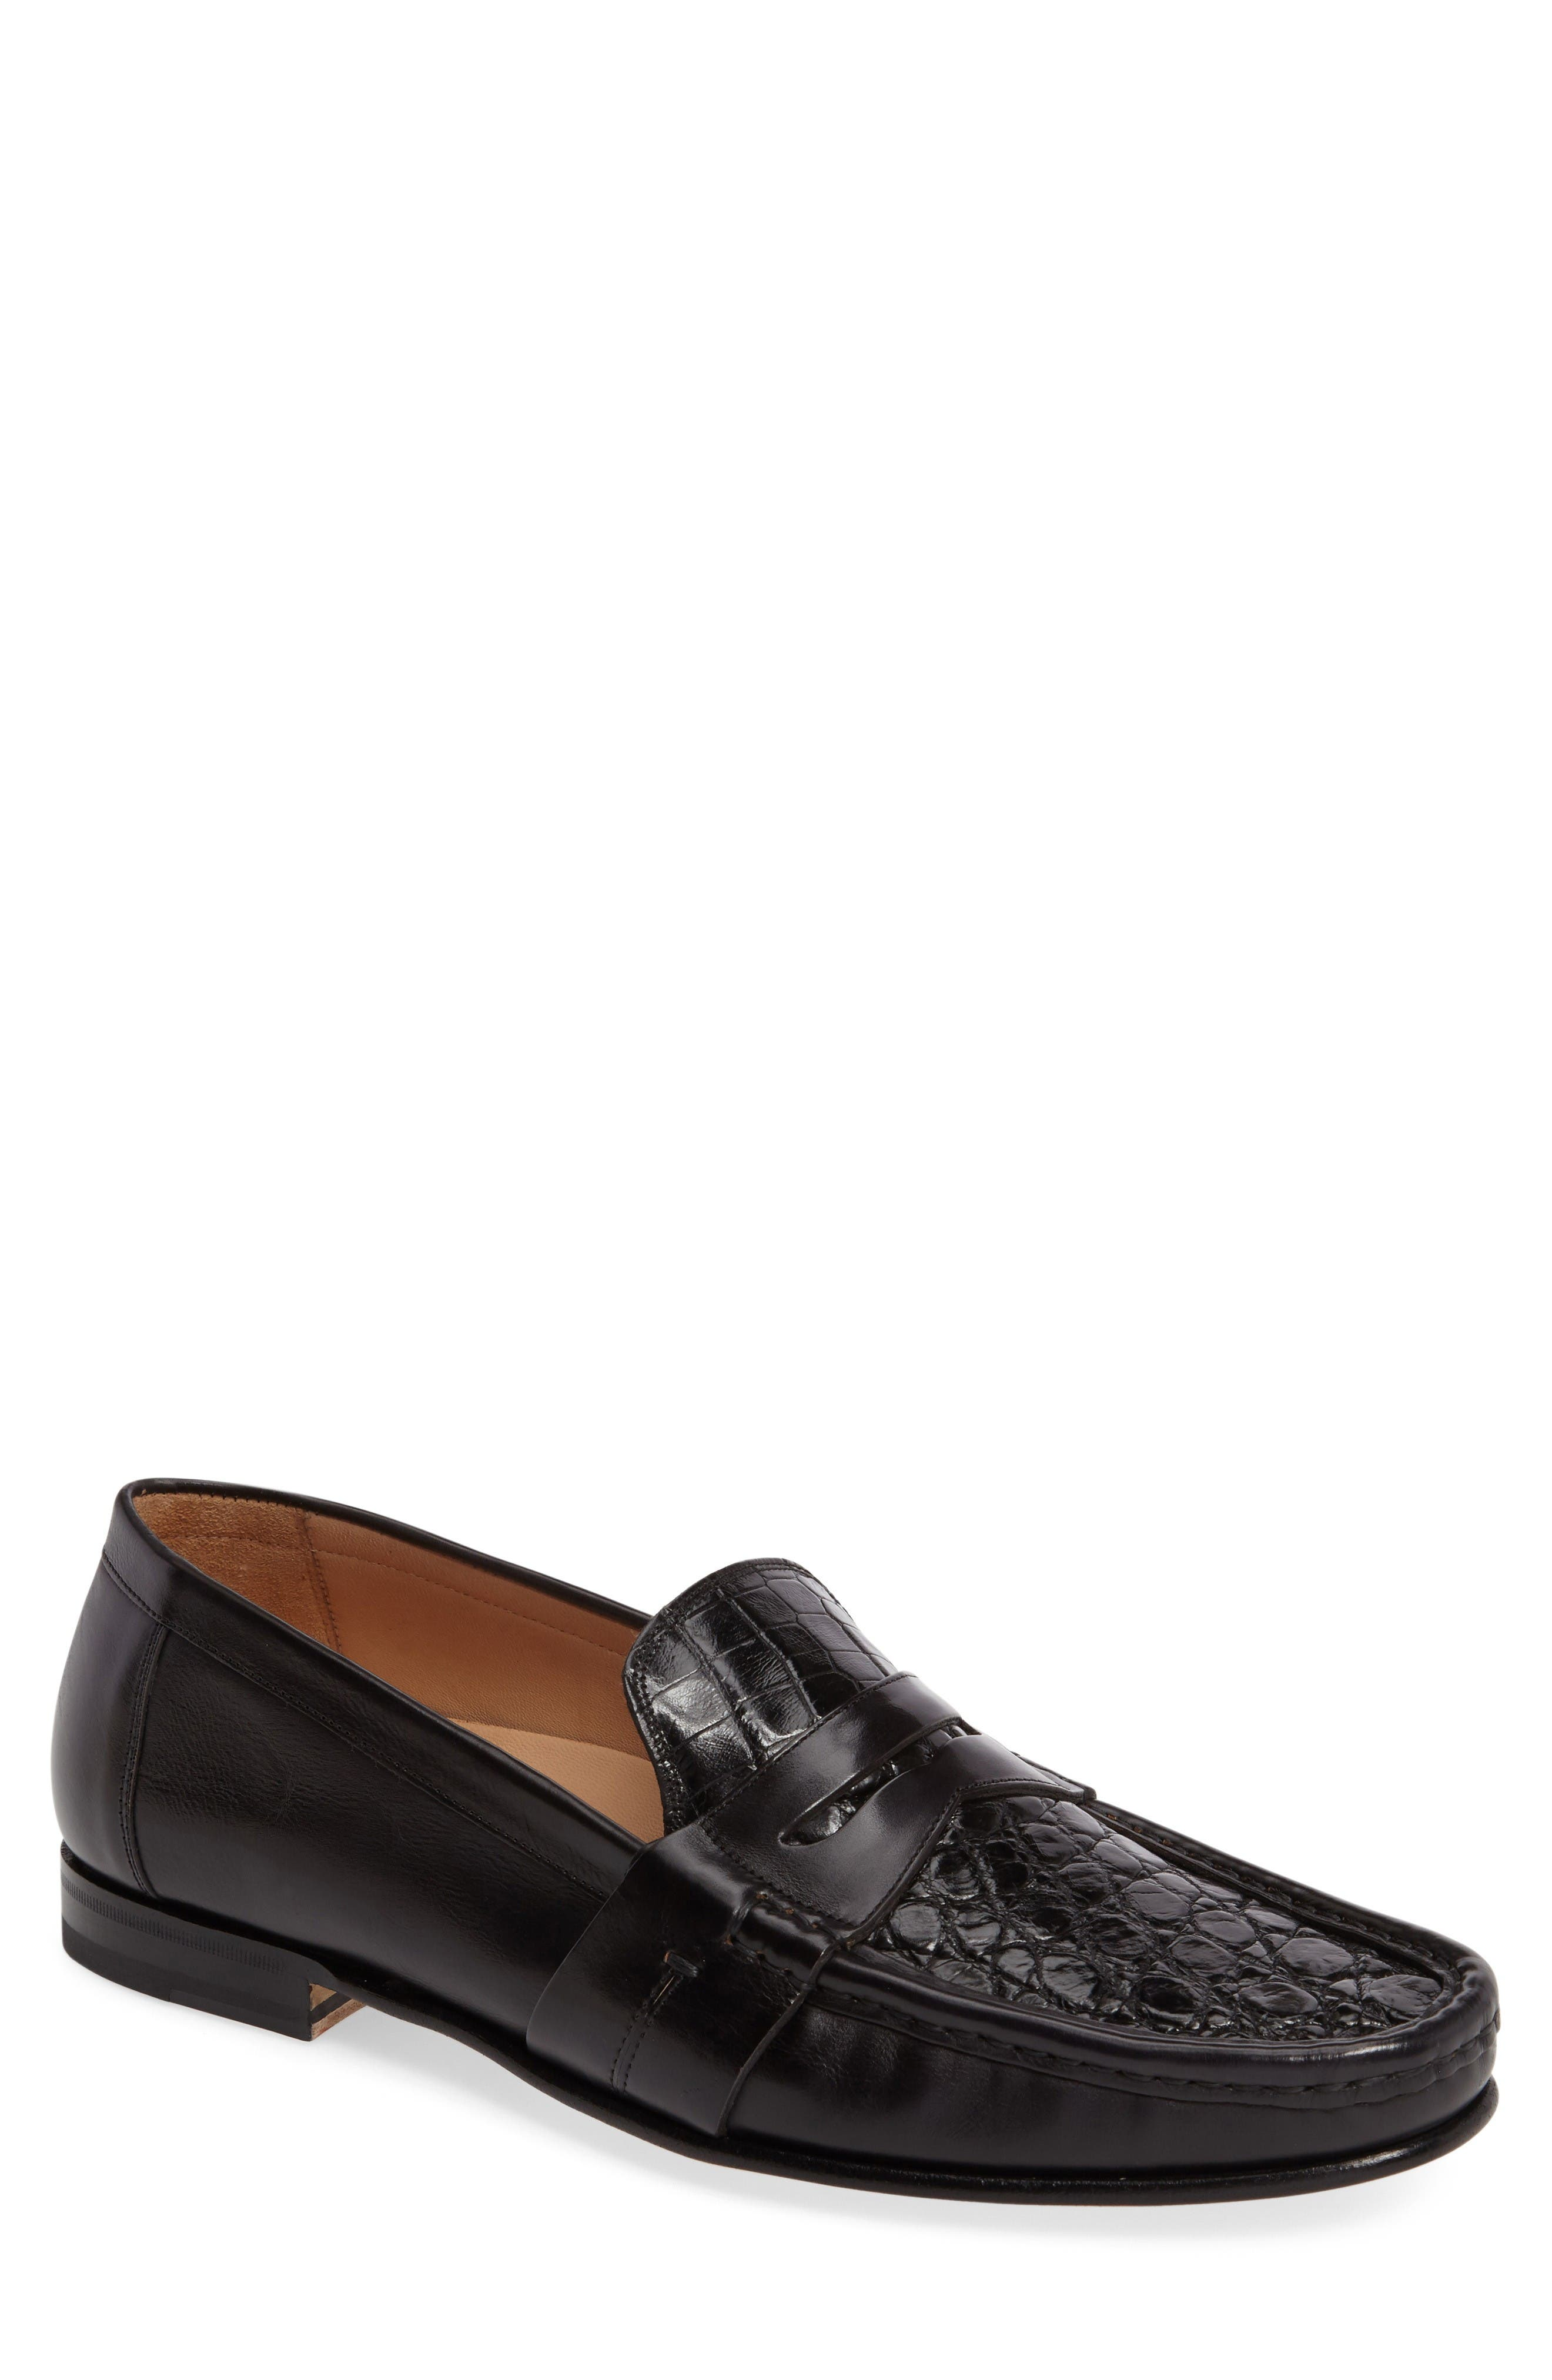 Marconi Penny Loafer,                             Main thumbnail 1, color,                             Black Leather